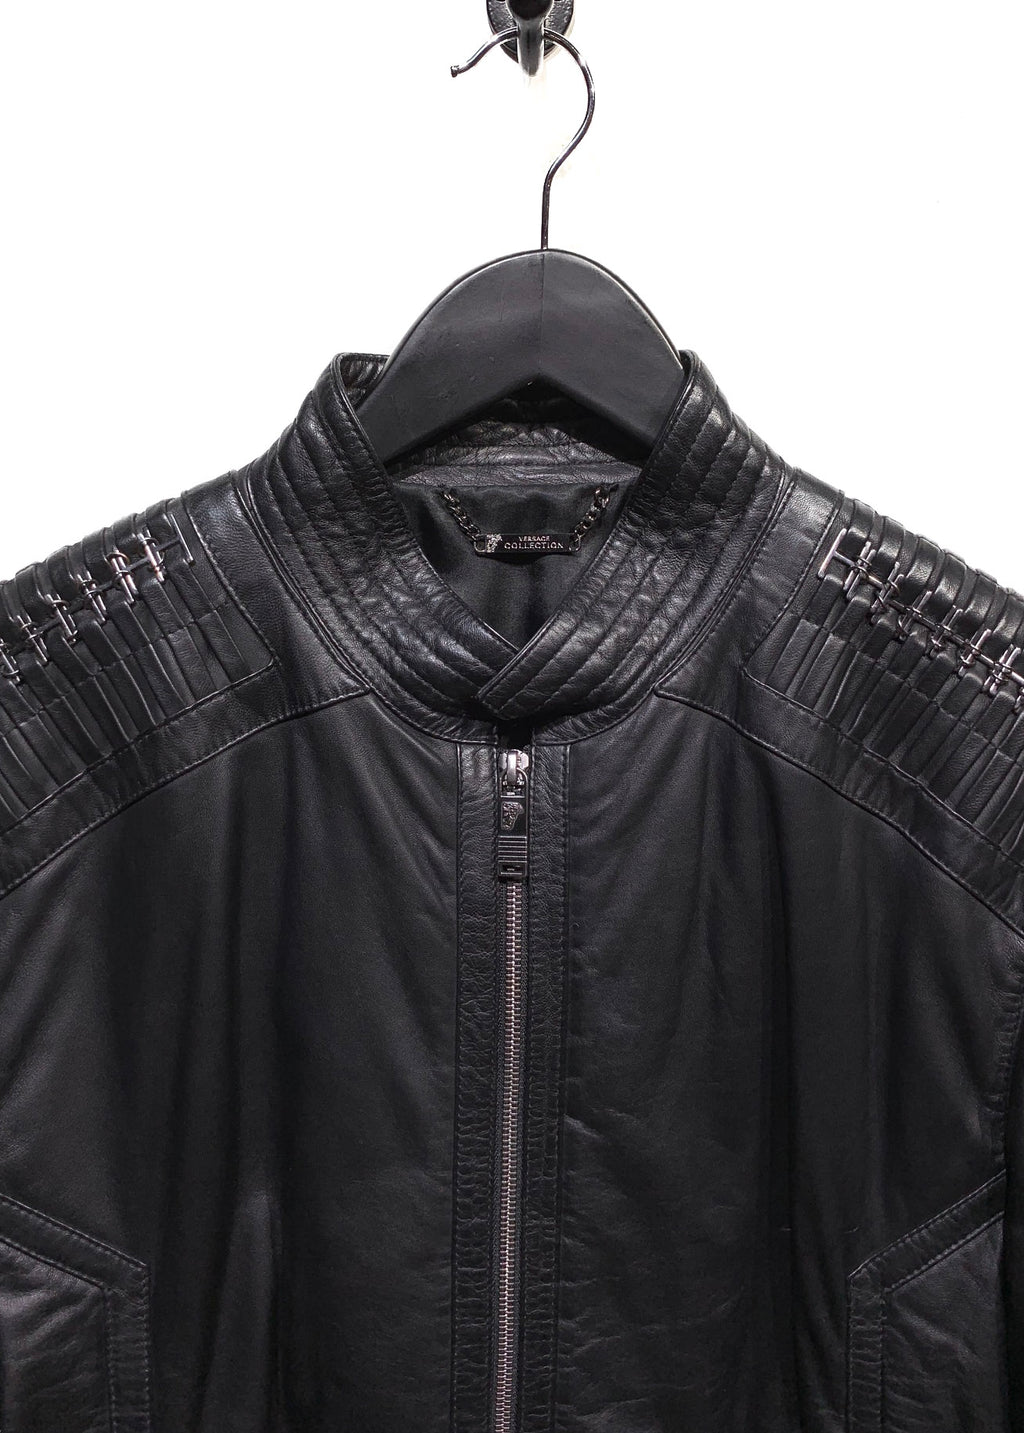 Versace Collection Black Leather Moto Jacket